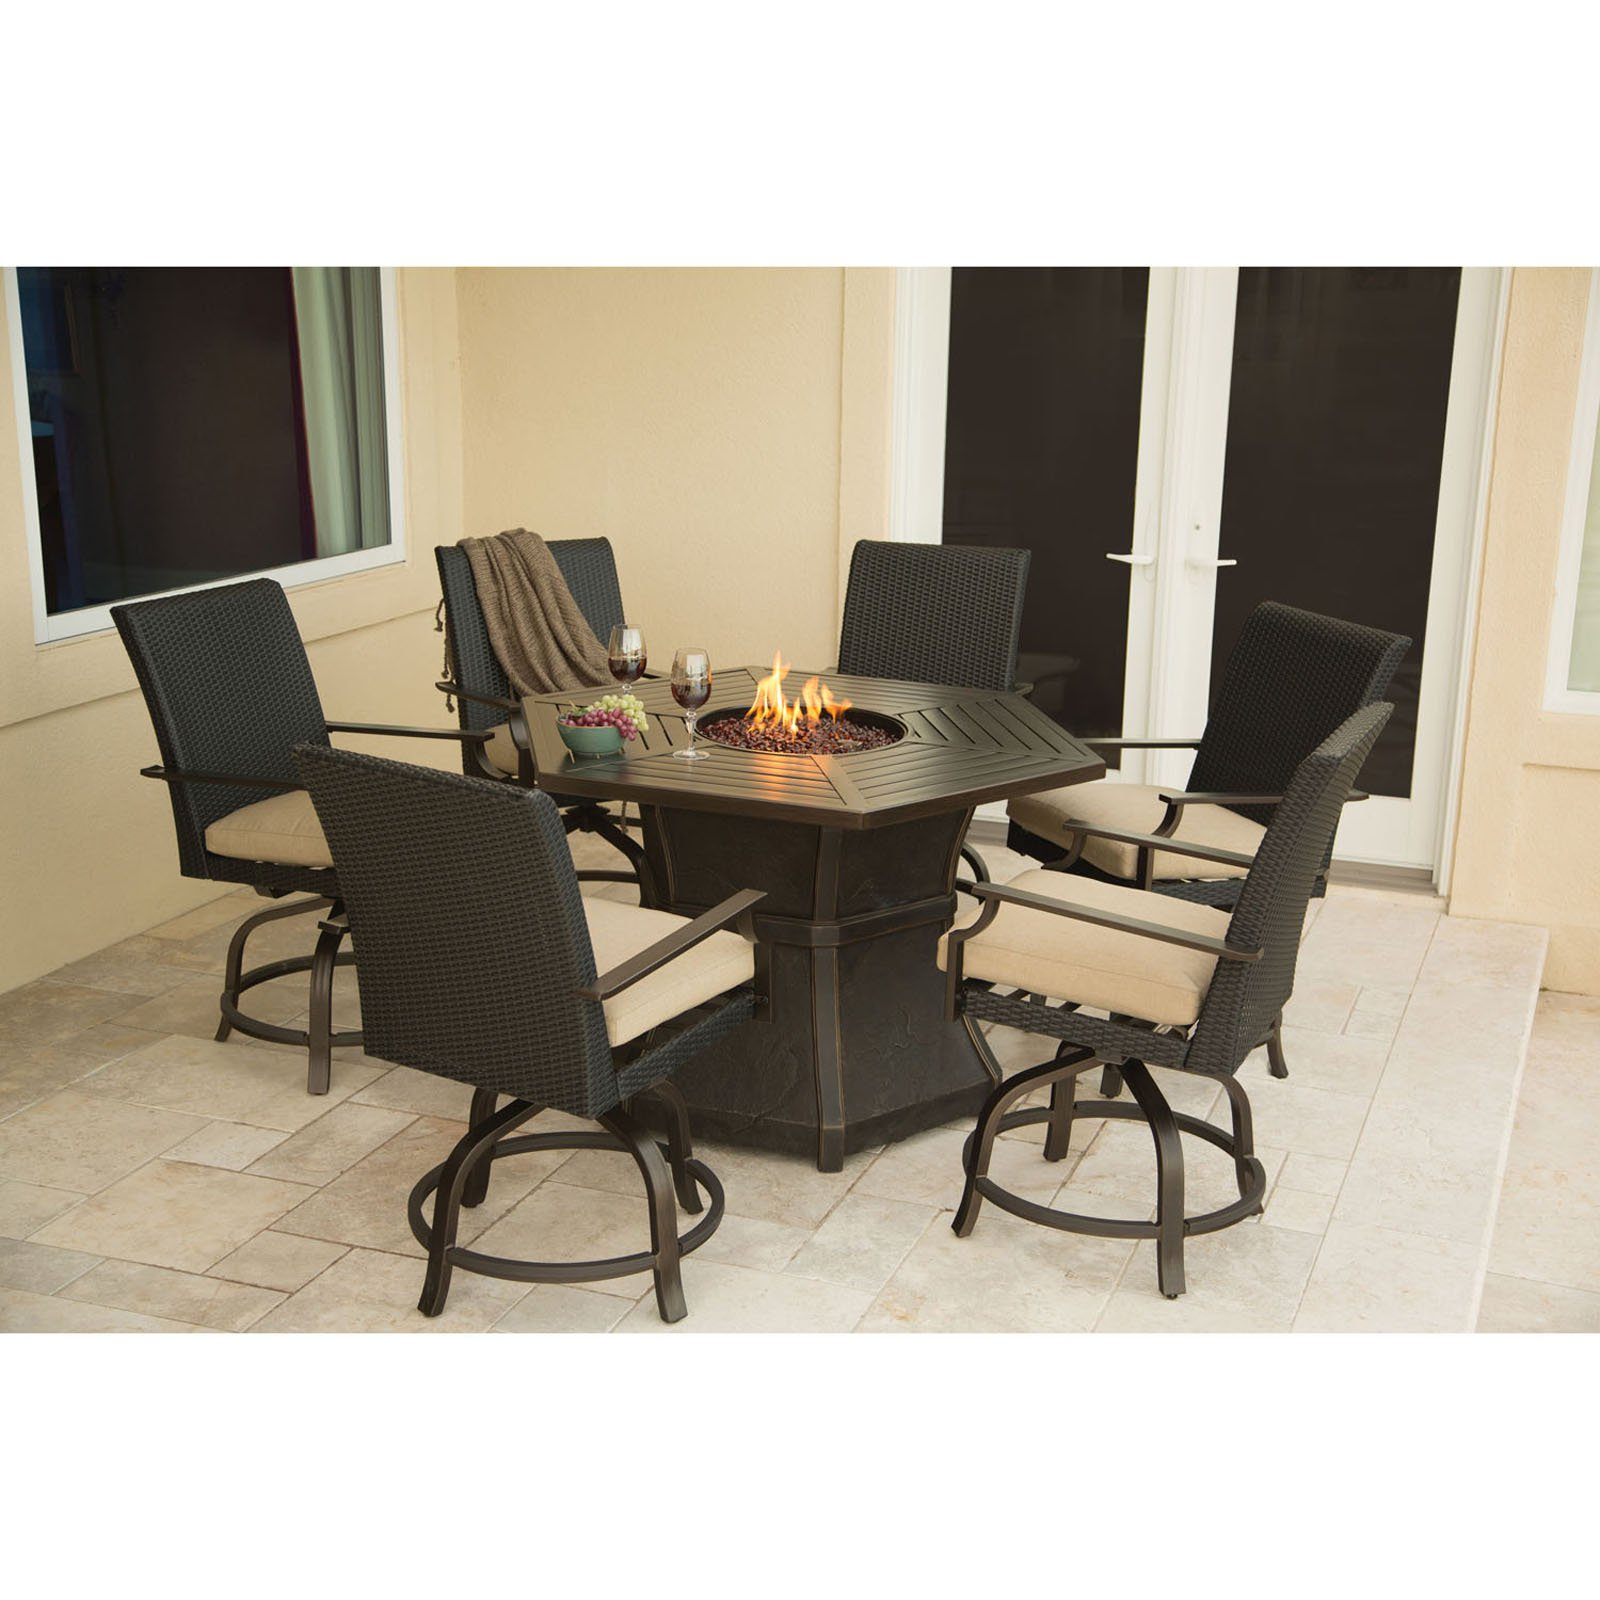 Hanover Aspen Creek 7-Piece Dining Set with Fire Pit Desert Sunset ASPENCRK7PCFP